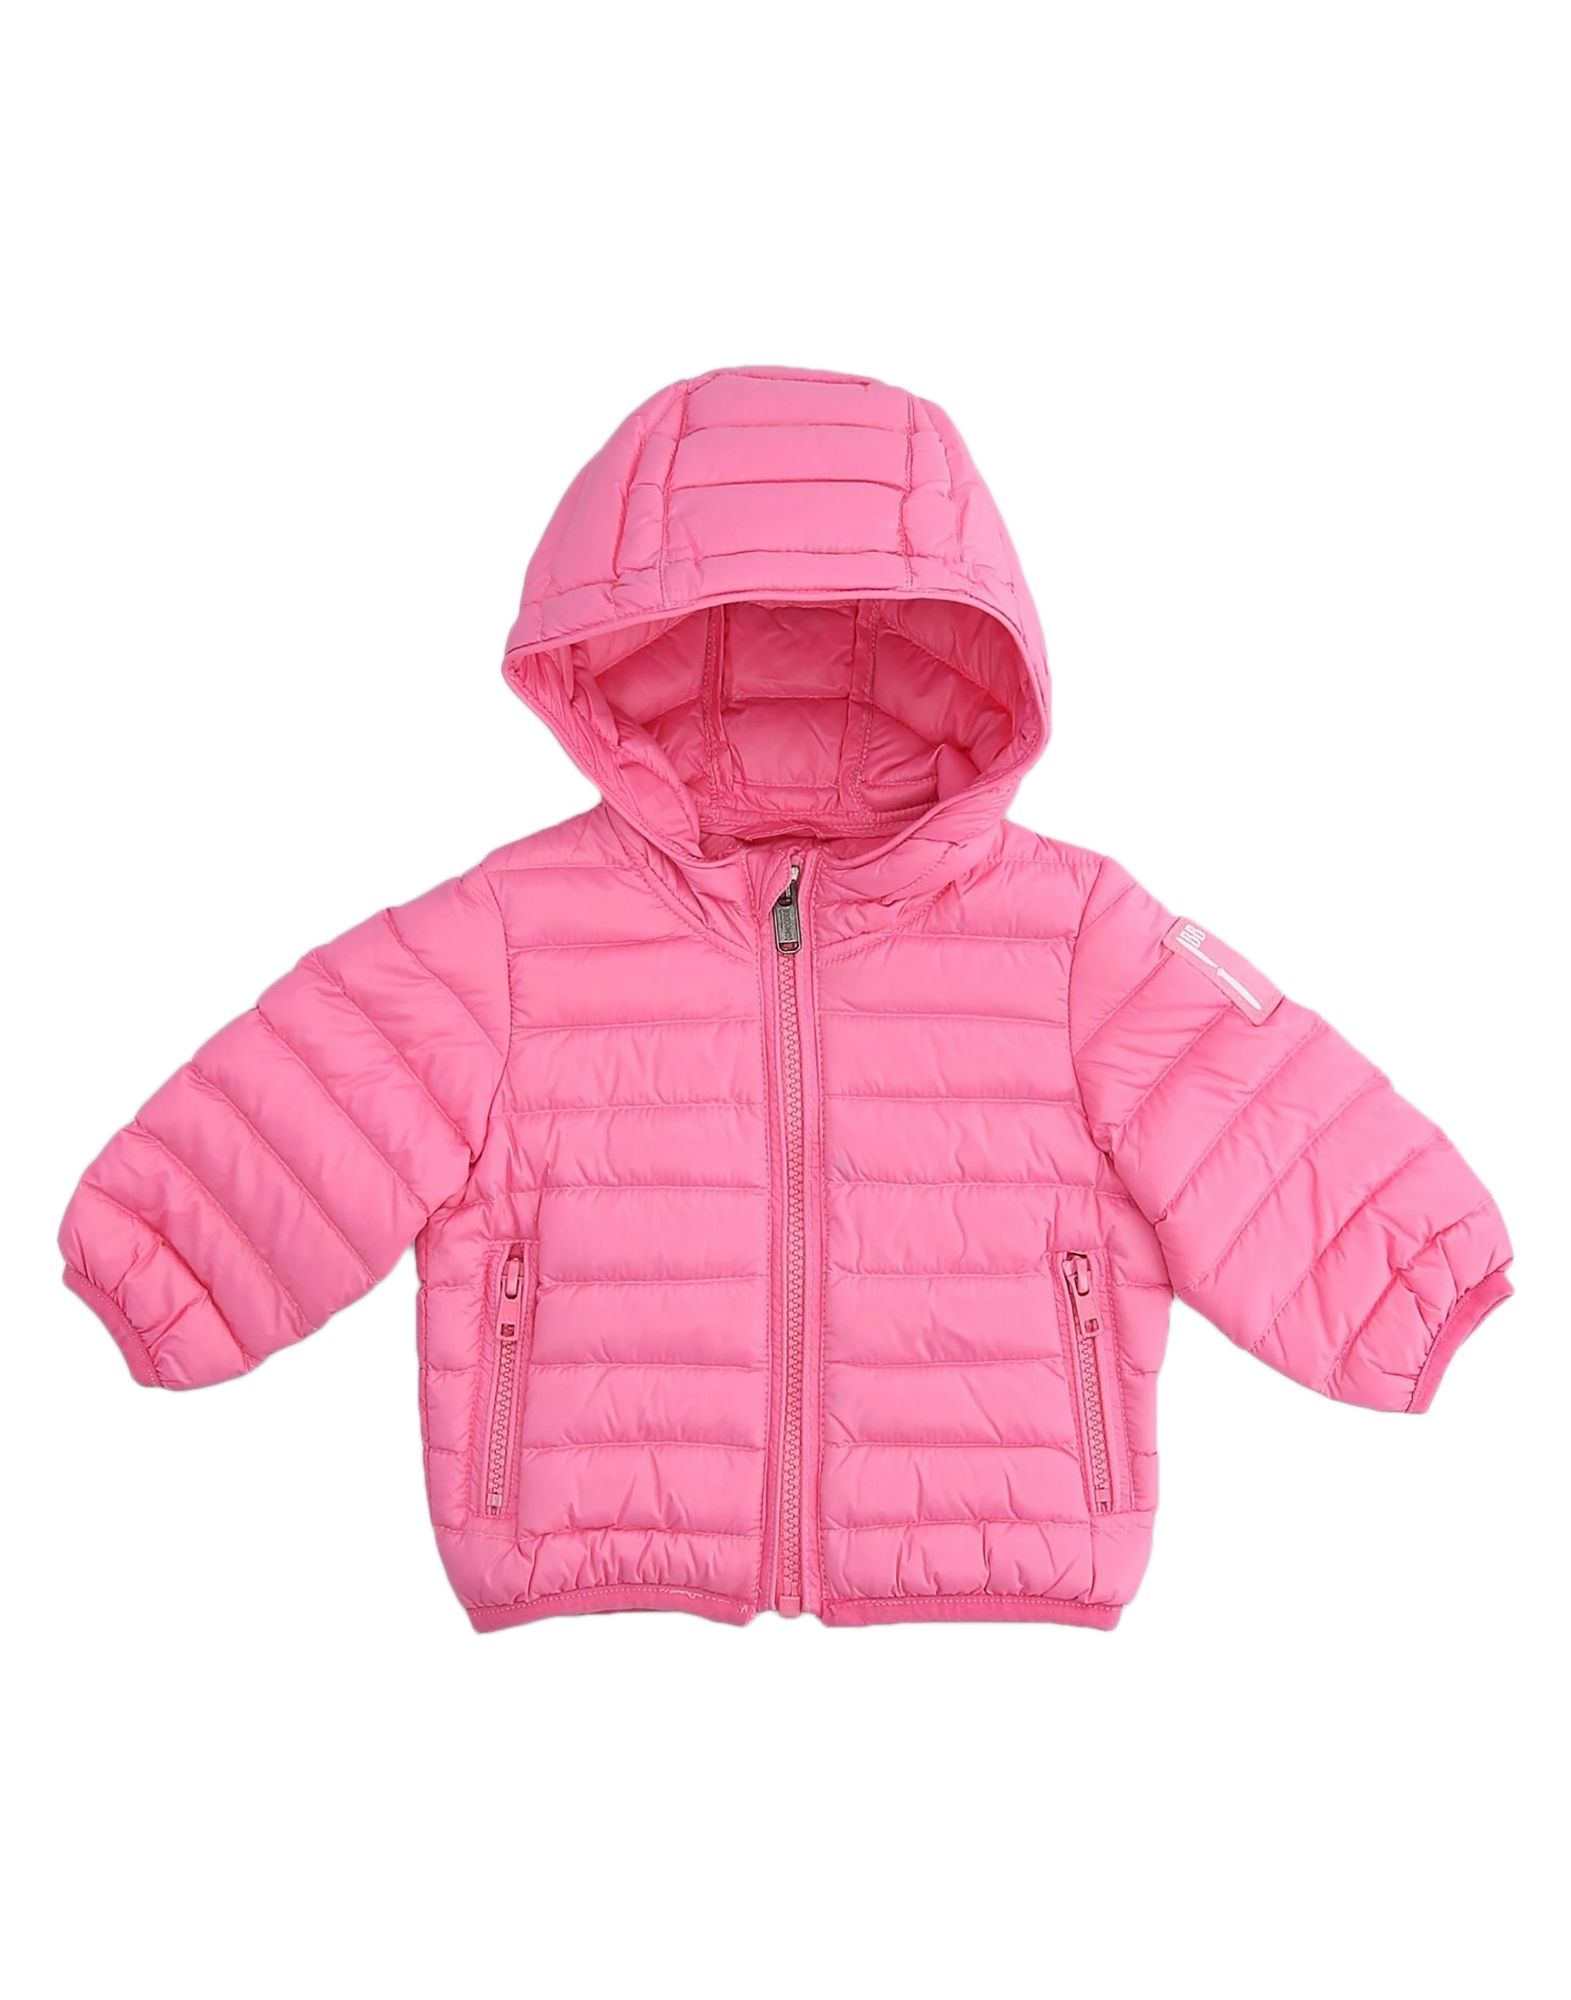 a5334f3cc7a0 Down Jackets for baby girl   toddler 0-24 months